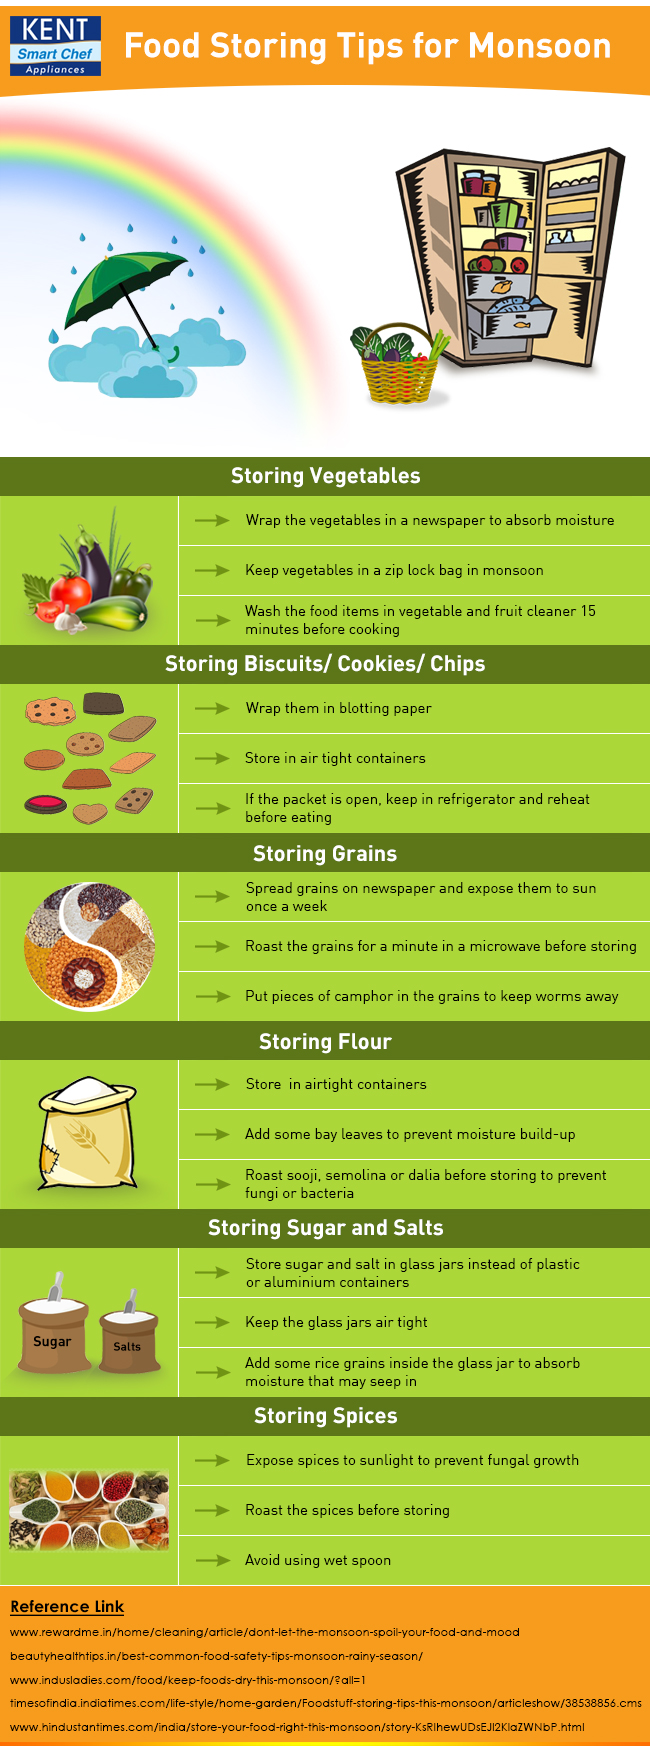 Food Storing Tips for Monsoon - Infographic